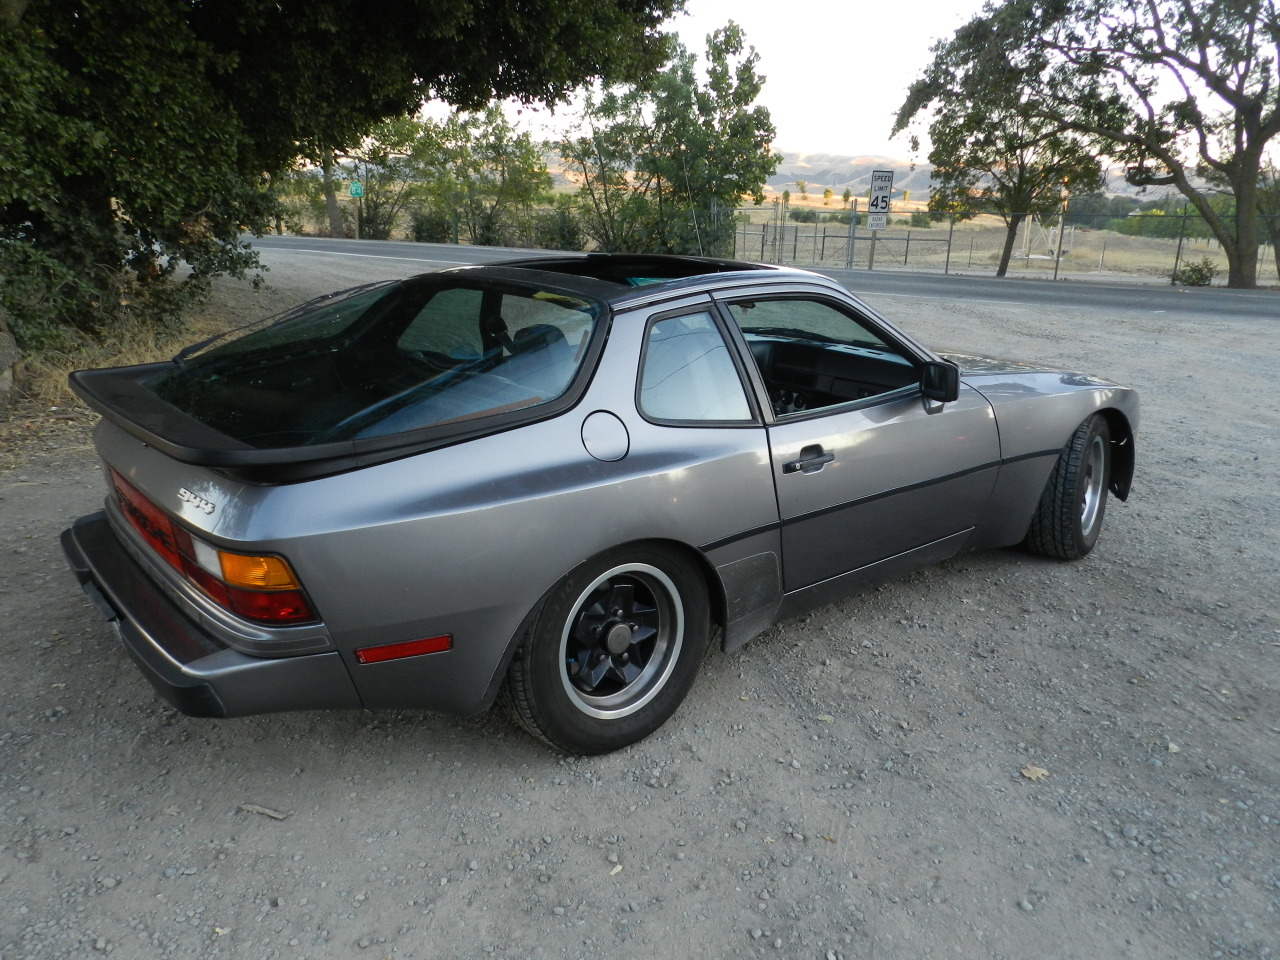 "motoriginal:  Happyfelthappy submitted: My 1983 Porsche 944. =] Submission Sunday  AMS  è l'associazione che si prefigge la diffusione della cultura della sicurezza stradale e la promozione della stessa in tutte le sue accezioni;  l'intento è quello di sviluppare un maggior senso civico tra gli utenti della strada e dei comportamenti  da tenere, divulgando la conoscenza delle norme,  dei pericoli  e delle tecniche per evitarli o contrastarli.  AMS is an association that aims to spread the culture of road safety and the promotion of itself in all its meanings, the intent is to develop a greater sense of citizenship among the users of the road and how to behave, spreading the knowledge of the rules, dangers and techniques to avoid them or deal with them.  amsguidasicura@gmail.com  www.amsguidasicura.com _______________________________  Ruote LatinaRuote Italia Il portale ospita aziende, uomini e piloti e vuol essere un luogo di incontro tra quanti vivono le ""ruote"", qualunque esse siano, con passione, consci del valore che l'invenzione della ruota ha rappresentato per l'umanità tutta. Seguiteci con attenzione, non ve ne pentirete.  Wheels Latina      Wheels  Italy The portal hosts companies, pilots and men and wishes to become a meeting place between those who live the ""wheels"", whatever they are, with passion, conscious of the value that the invention of the wheel has been for all of humanity. Follow carefully, you will not regret. Please Follow: http://www.ruotelatina.com ruotelatina@gmail.com"